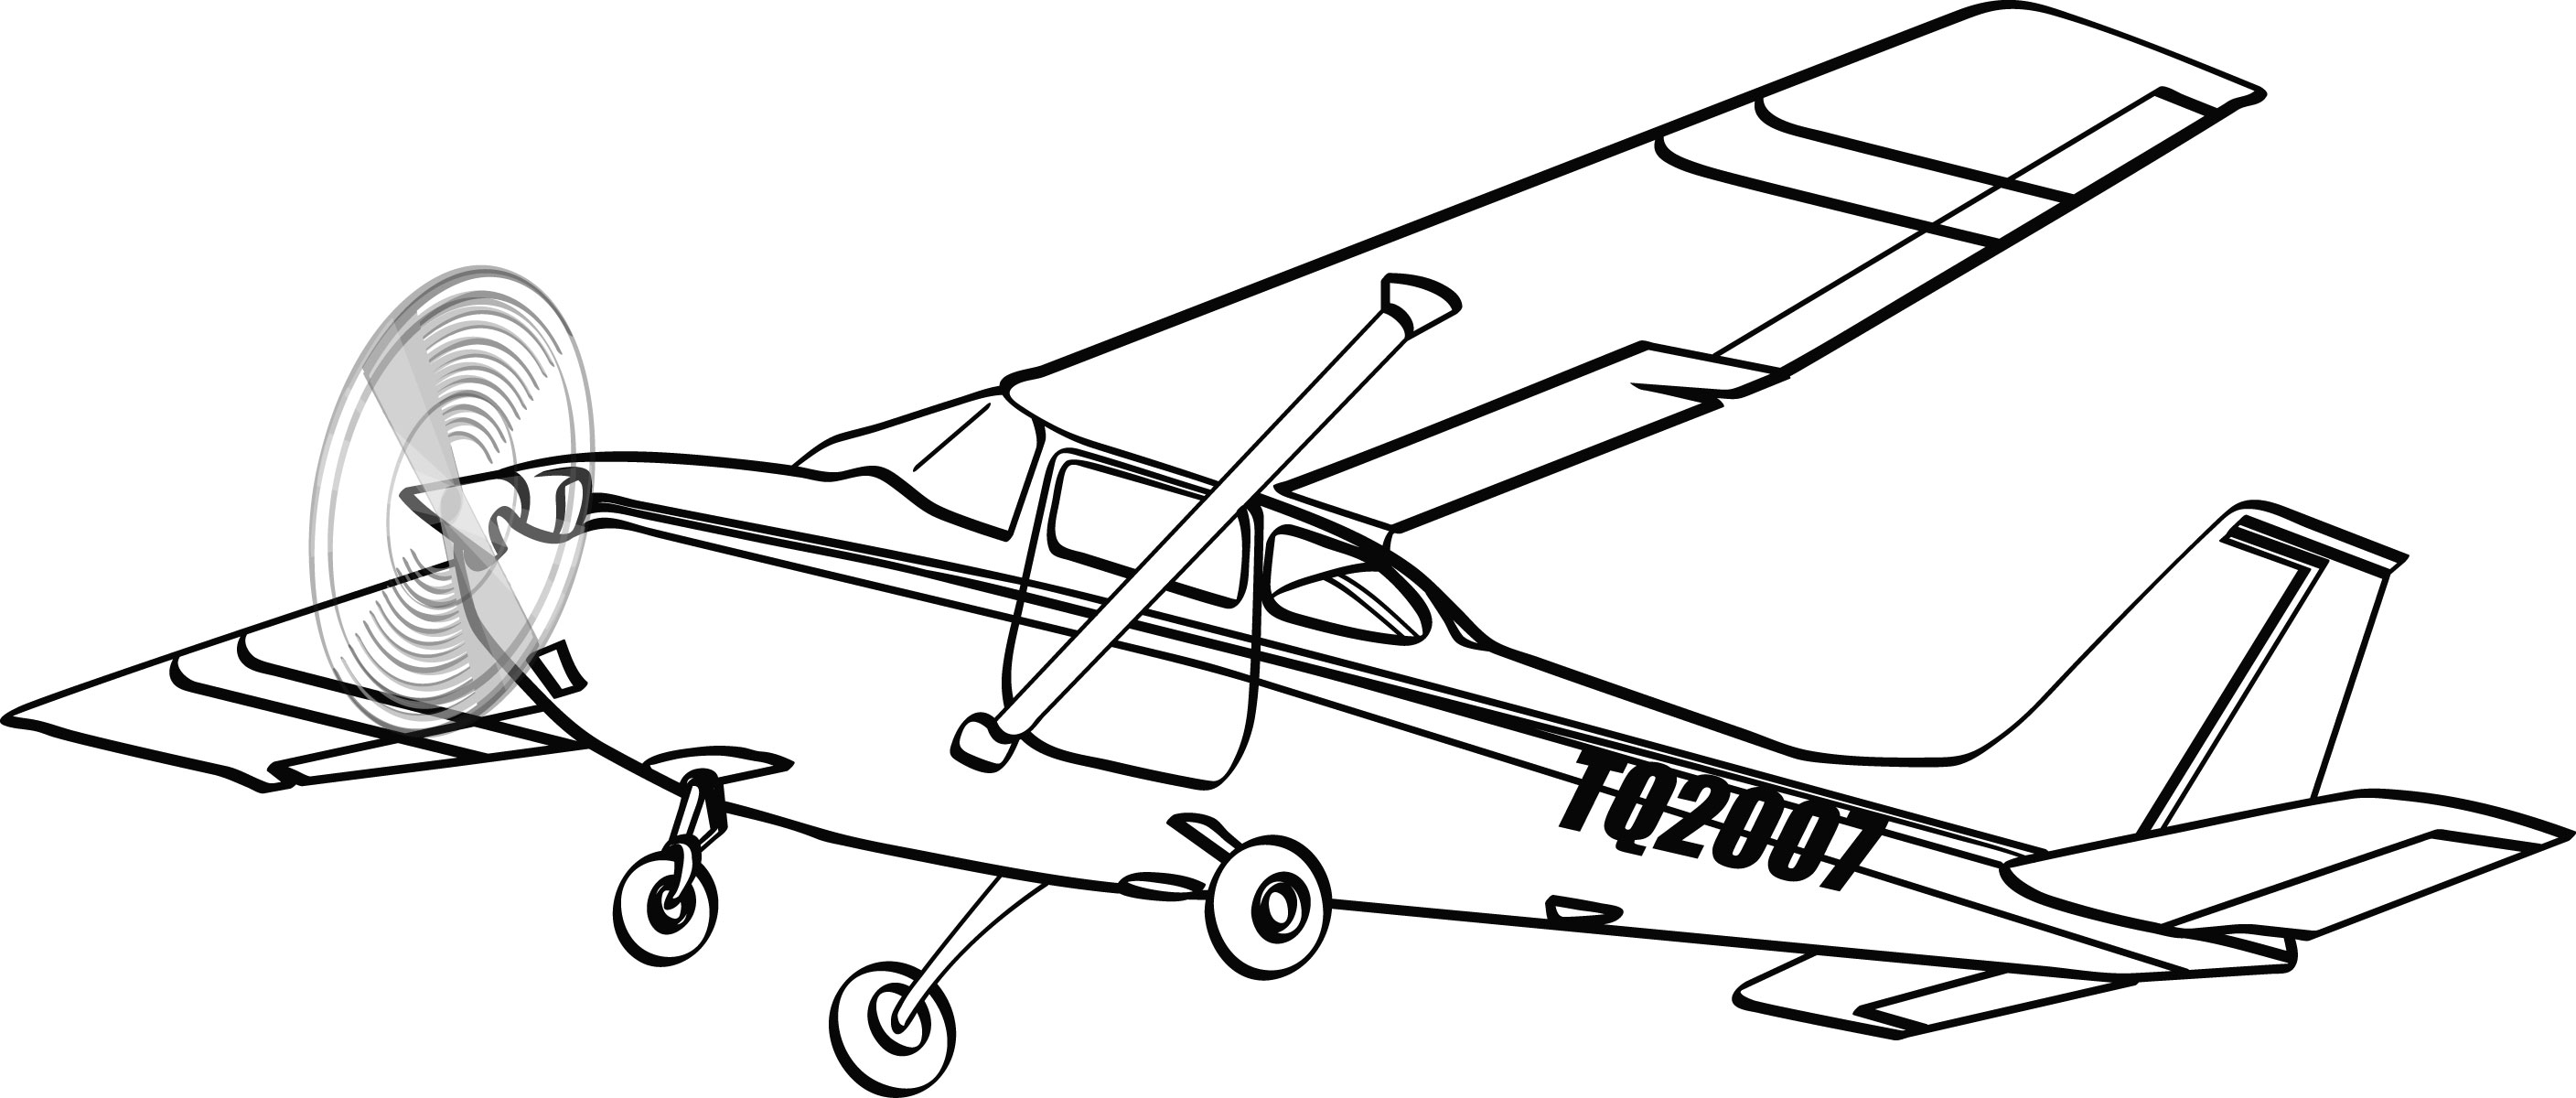 The Best Free Cessna Drawing Images Download From 74 Free